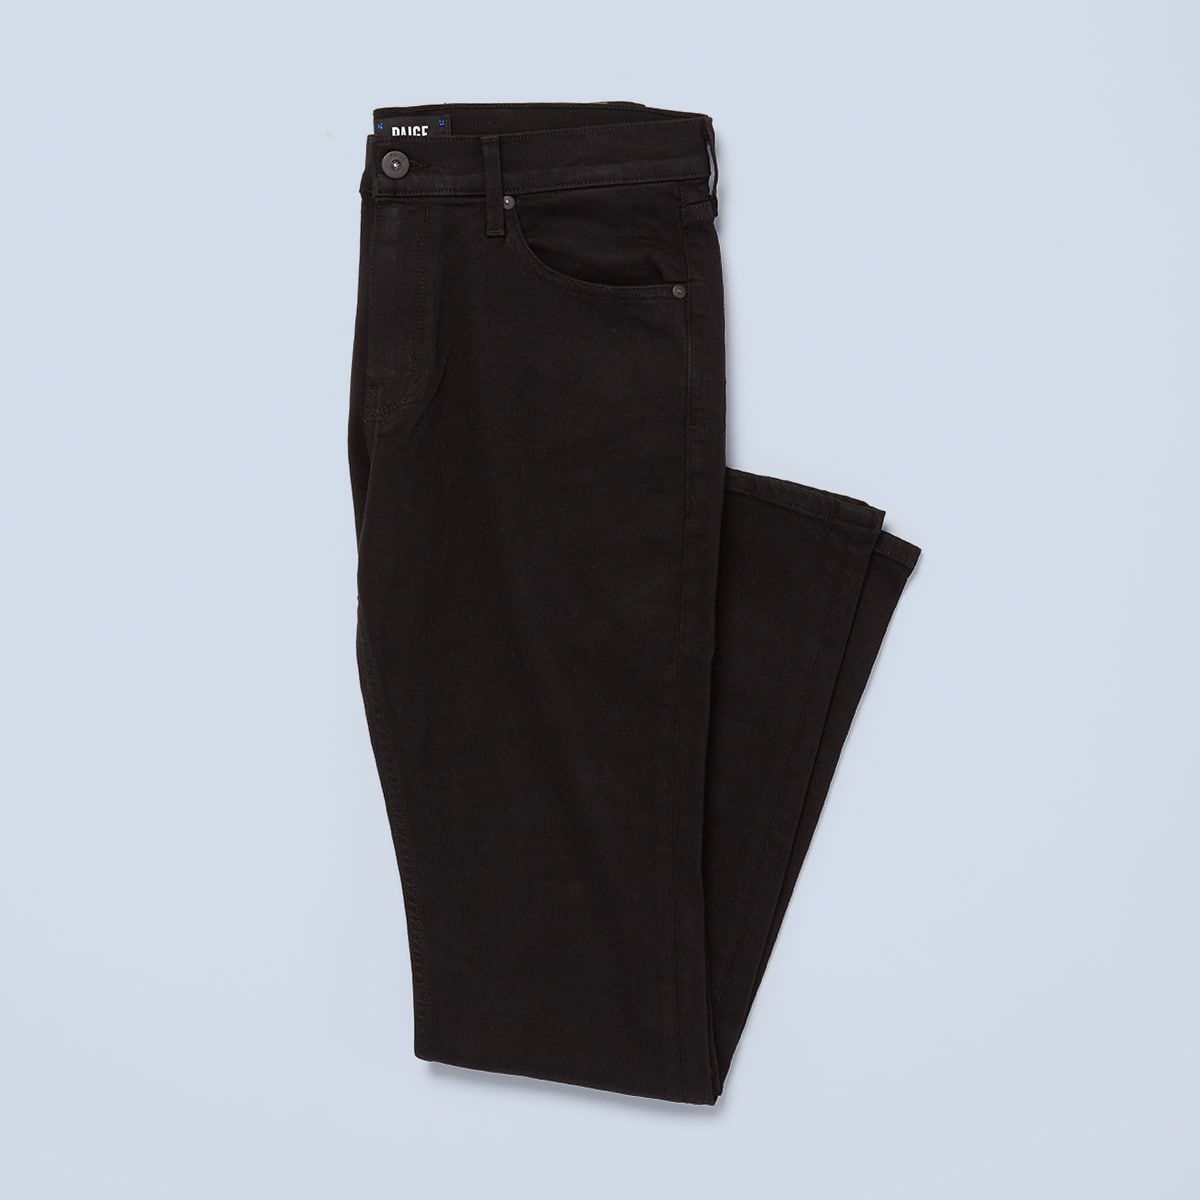 Black Paige denim